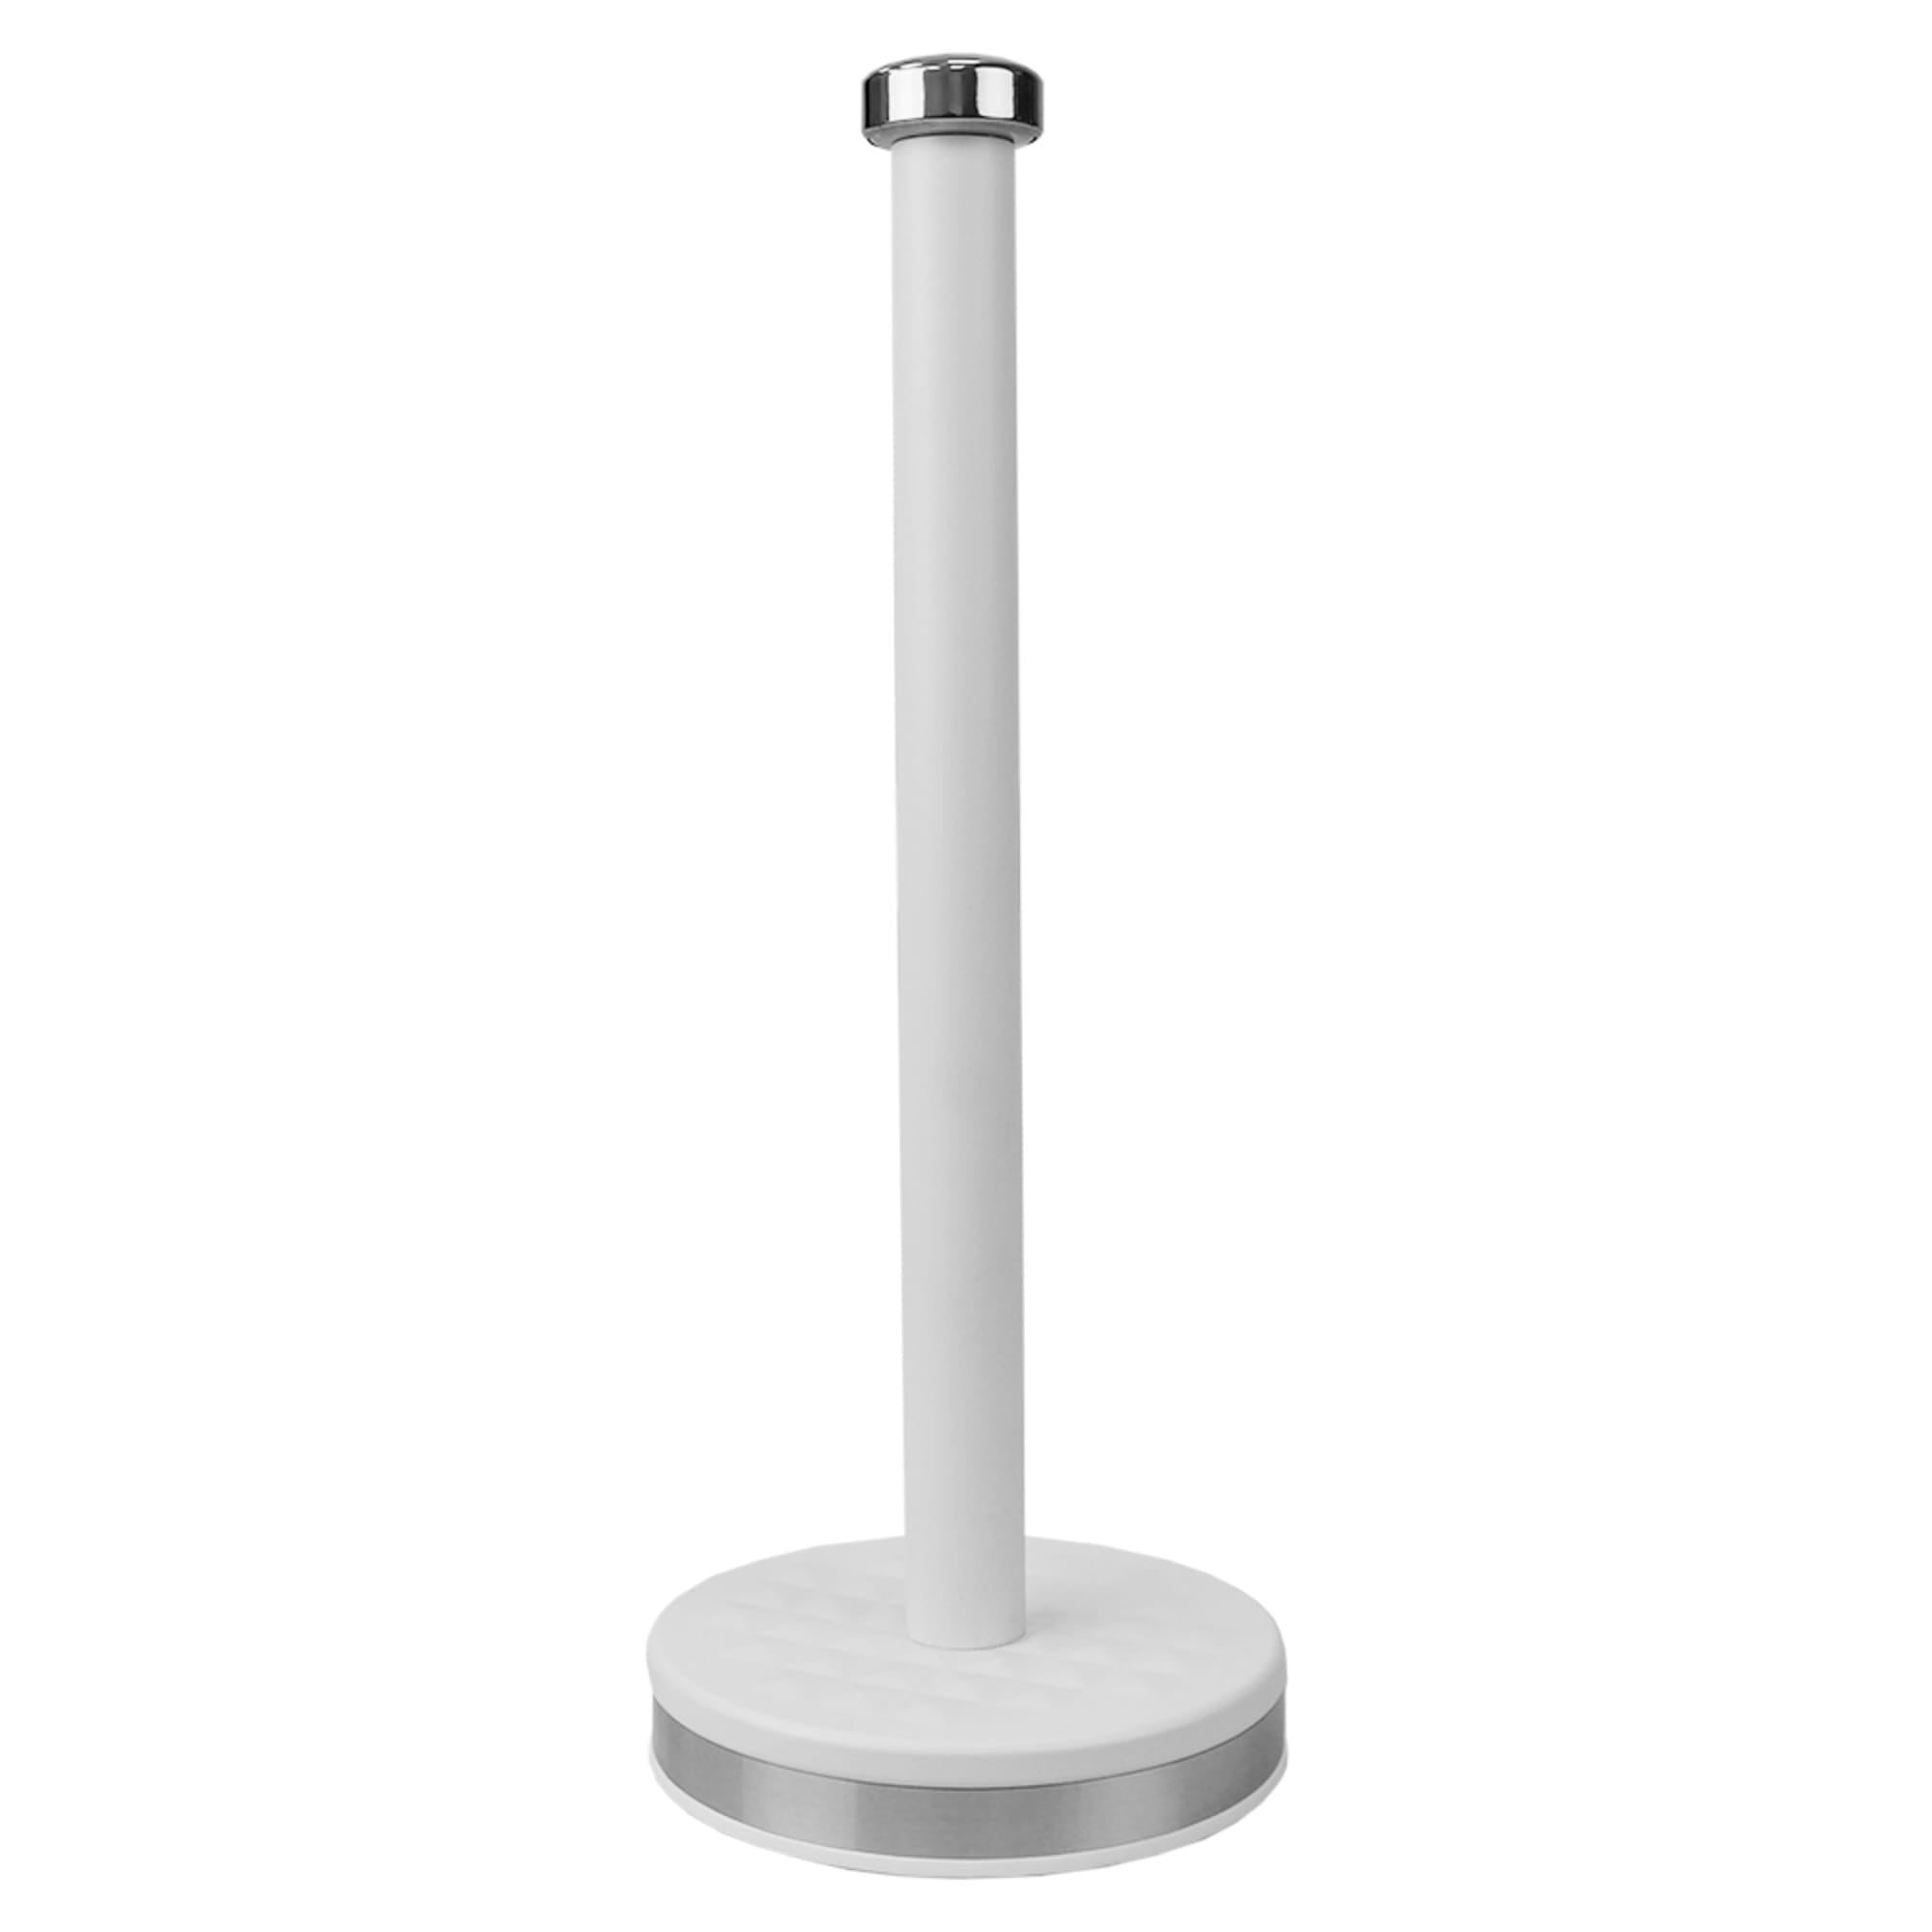 Michael Graves Design Soho Freestanding Tin Paper Towel Holder with Easy Twist On Finial, White